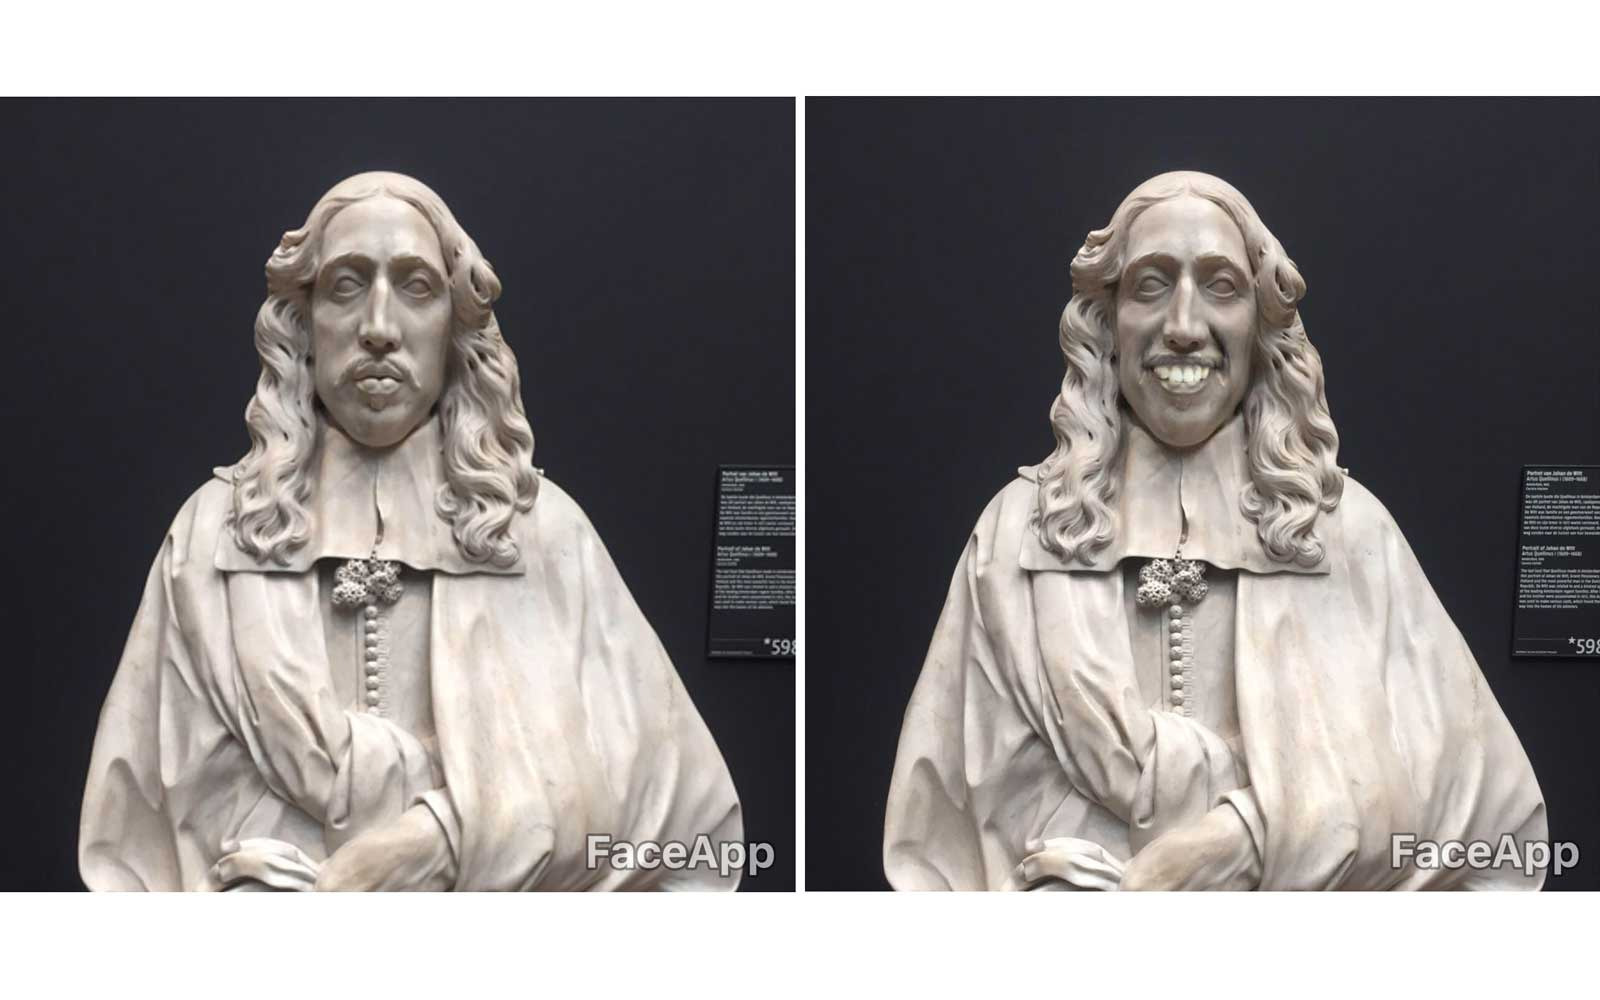 Masterpieces smile with FaceApp